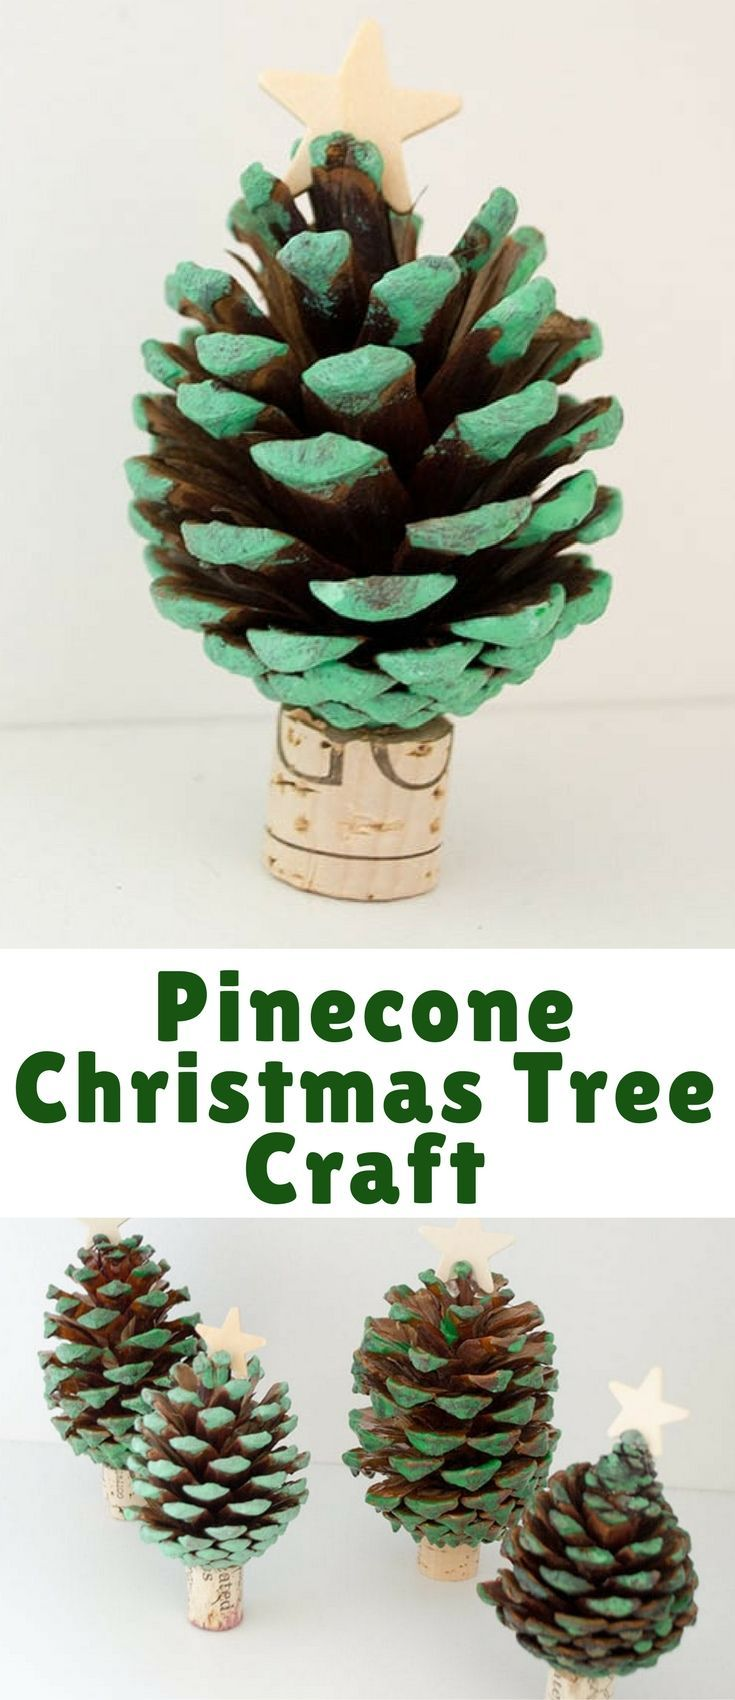 This pinecone Christmas tree craft was a fun project to do with my kids. Using acrylic paint, a star & wine cork, we have an adorable start to our holiday.